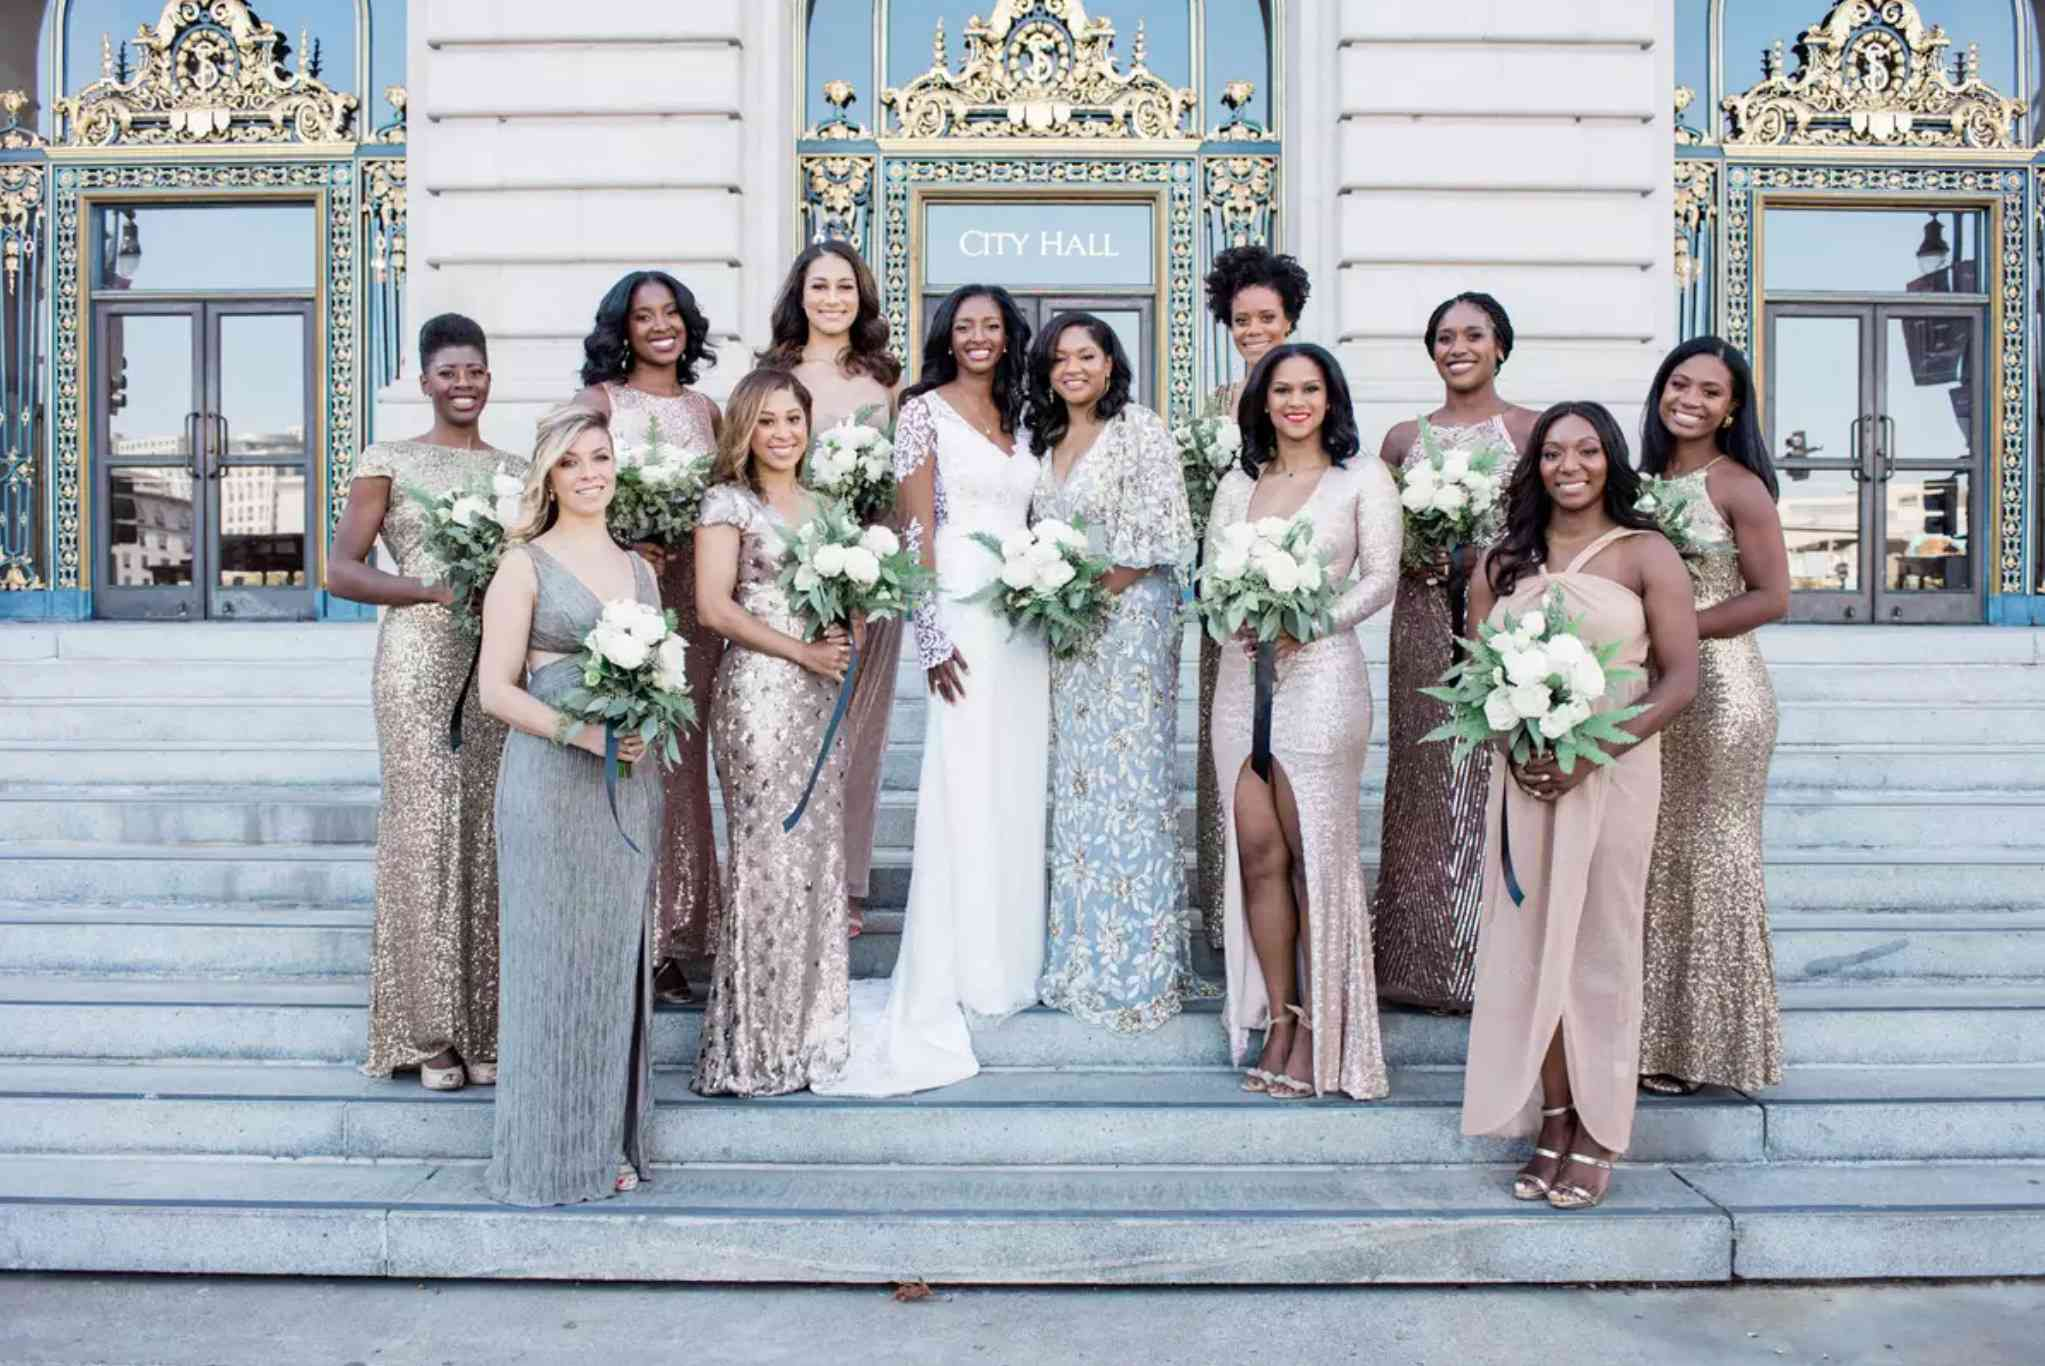 Bride with bridesmaids in mismatched sequin dresses